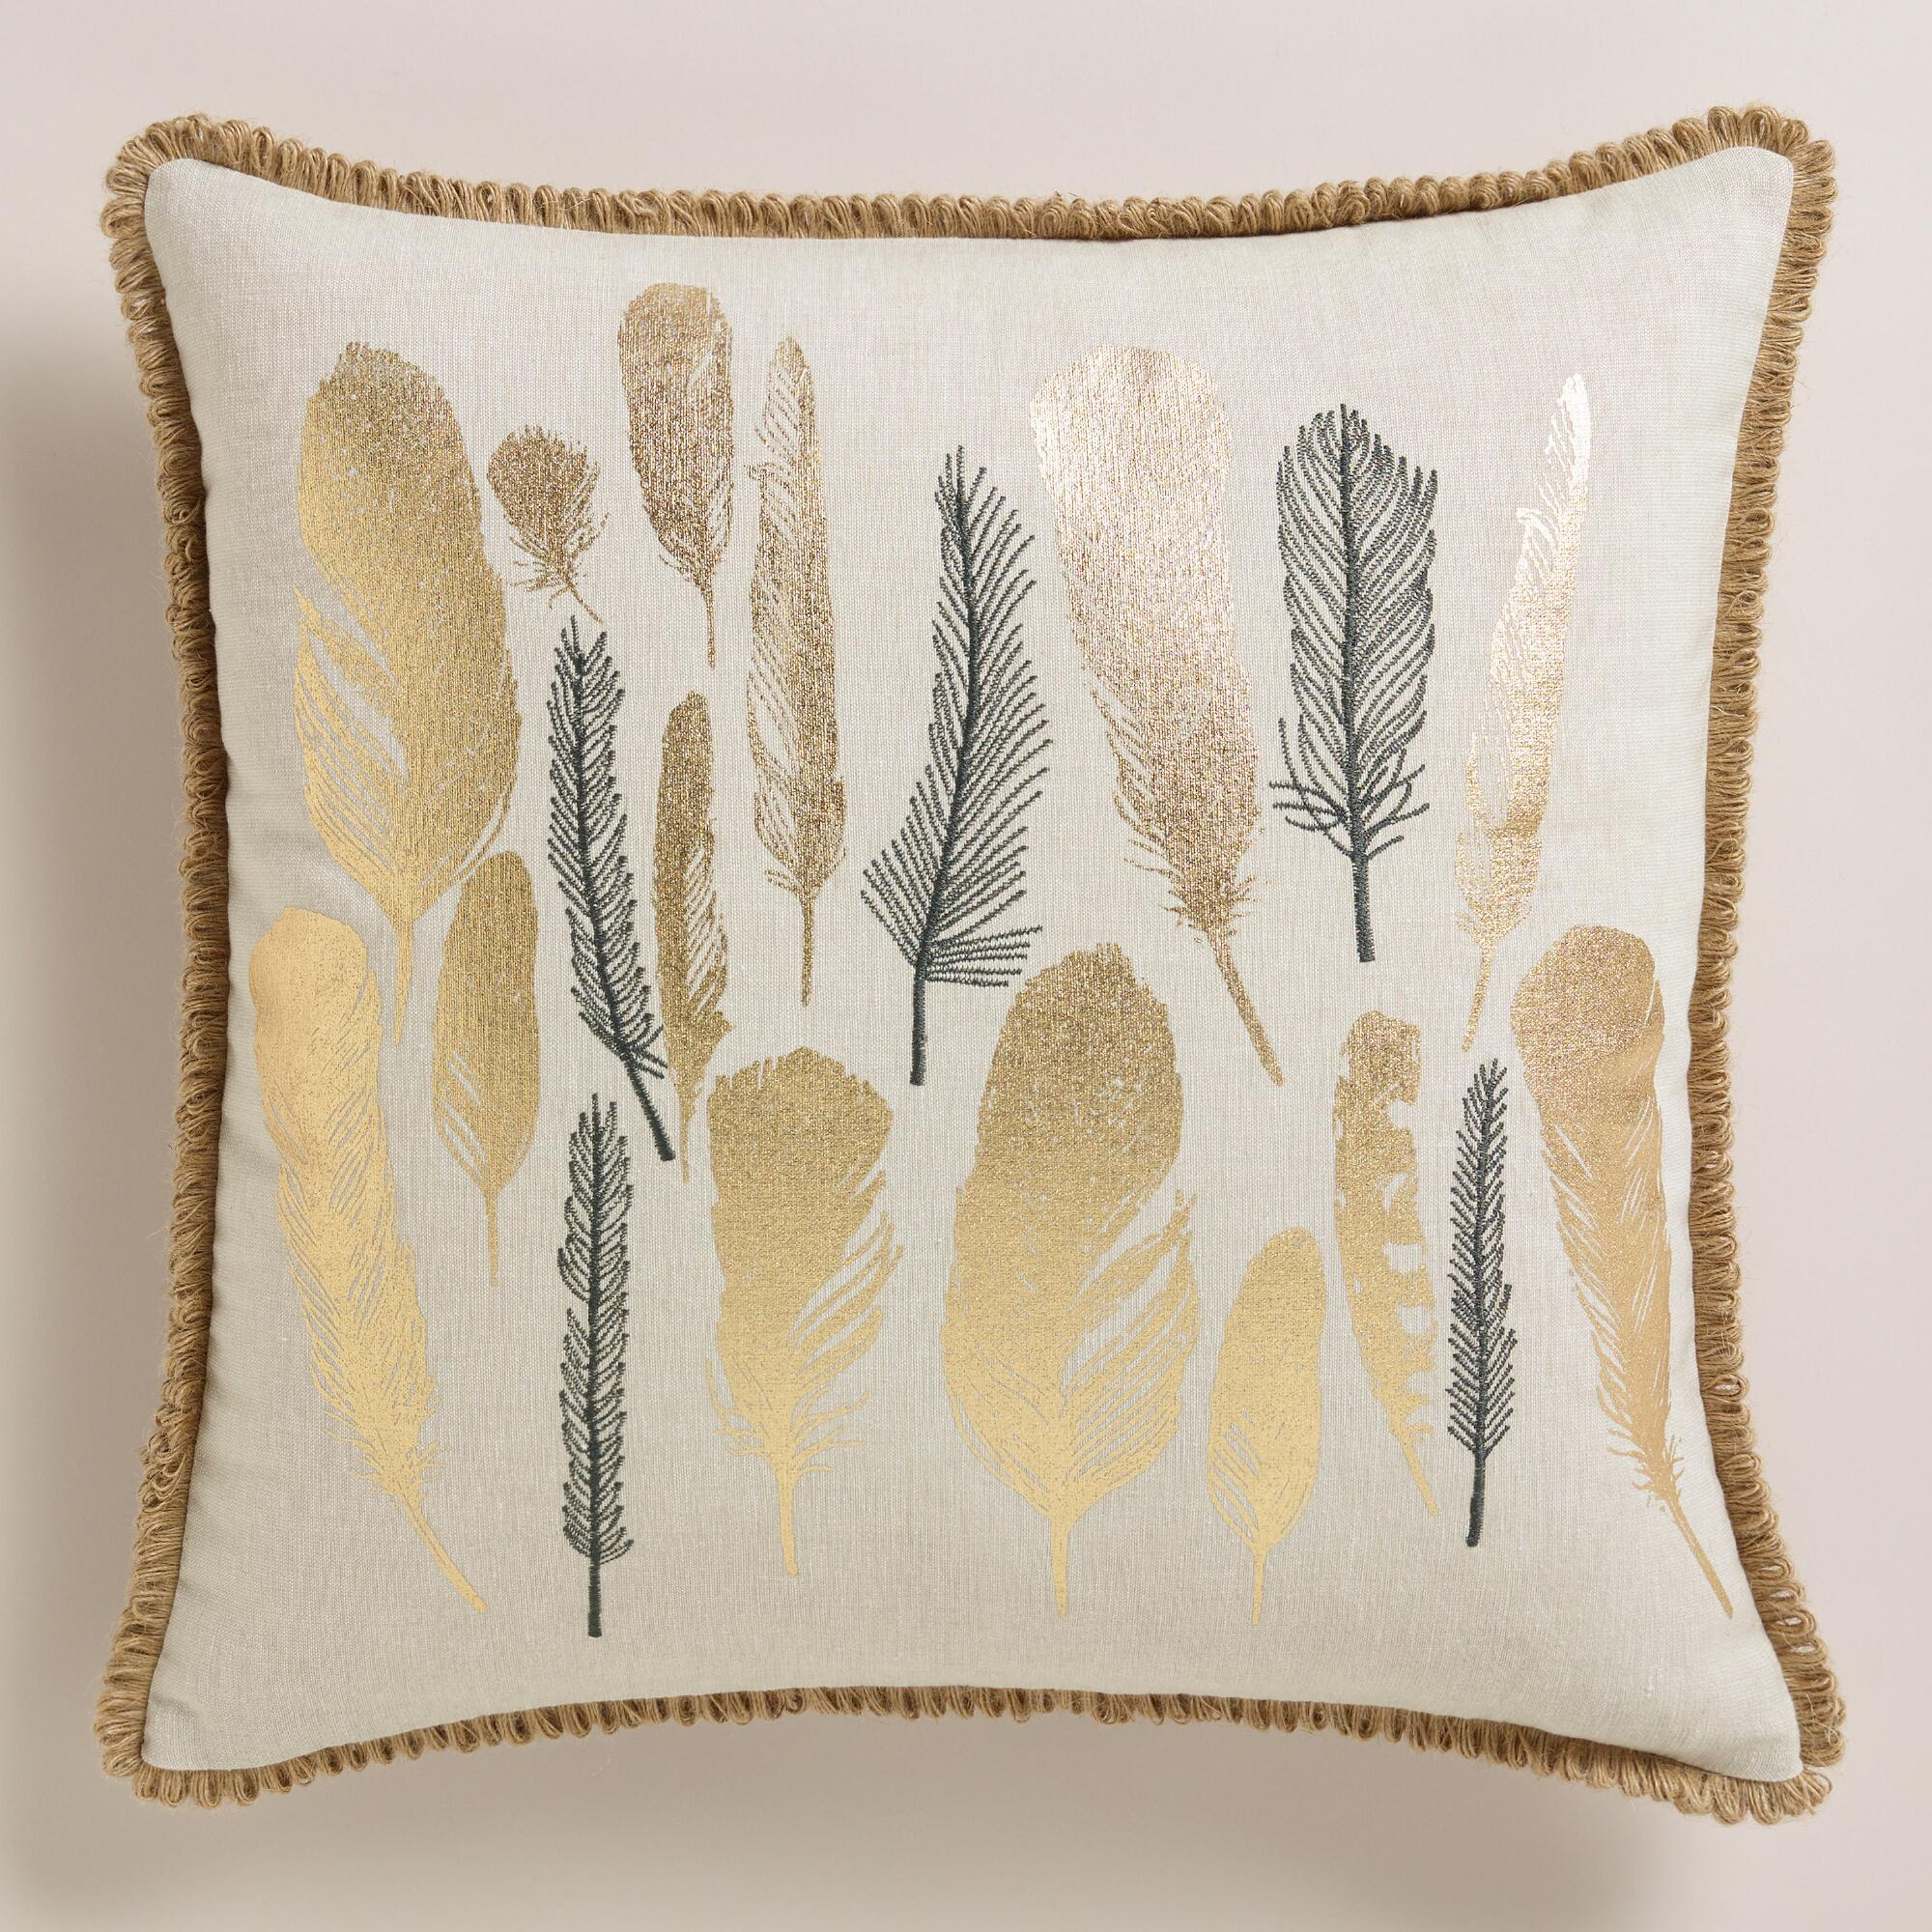 Decorative Pillows Feather : Metallic and Embroidered Feather Throw Pillow World Market